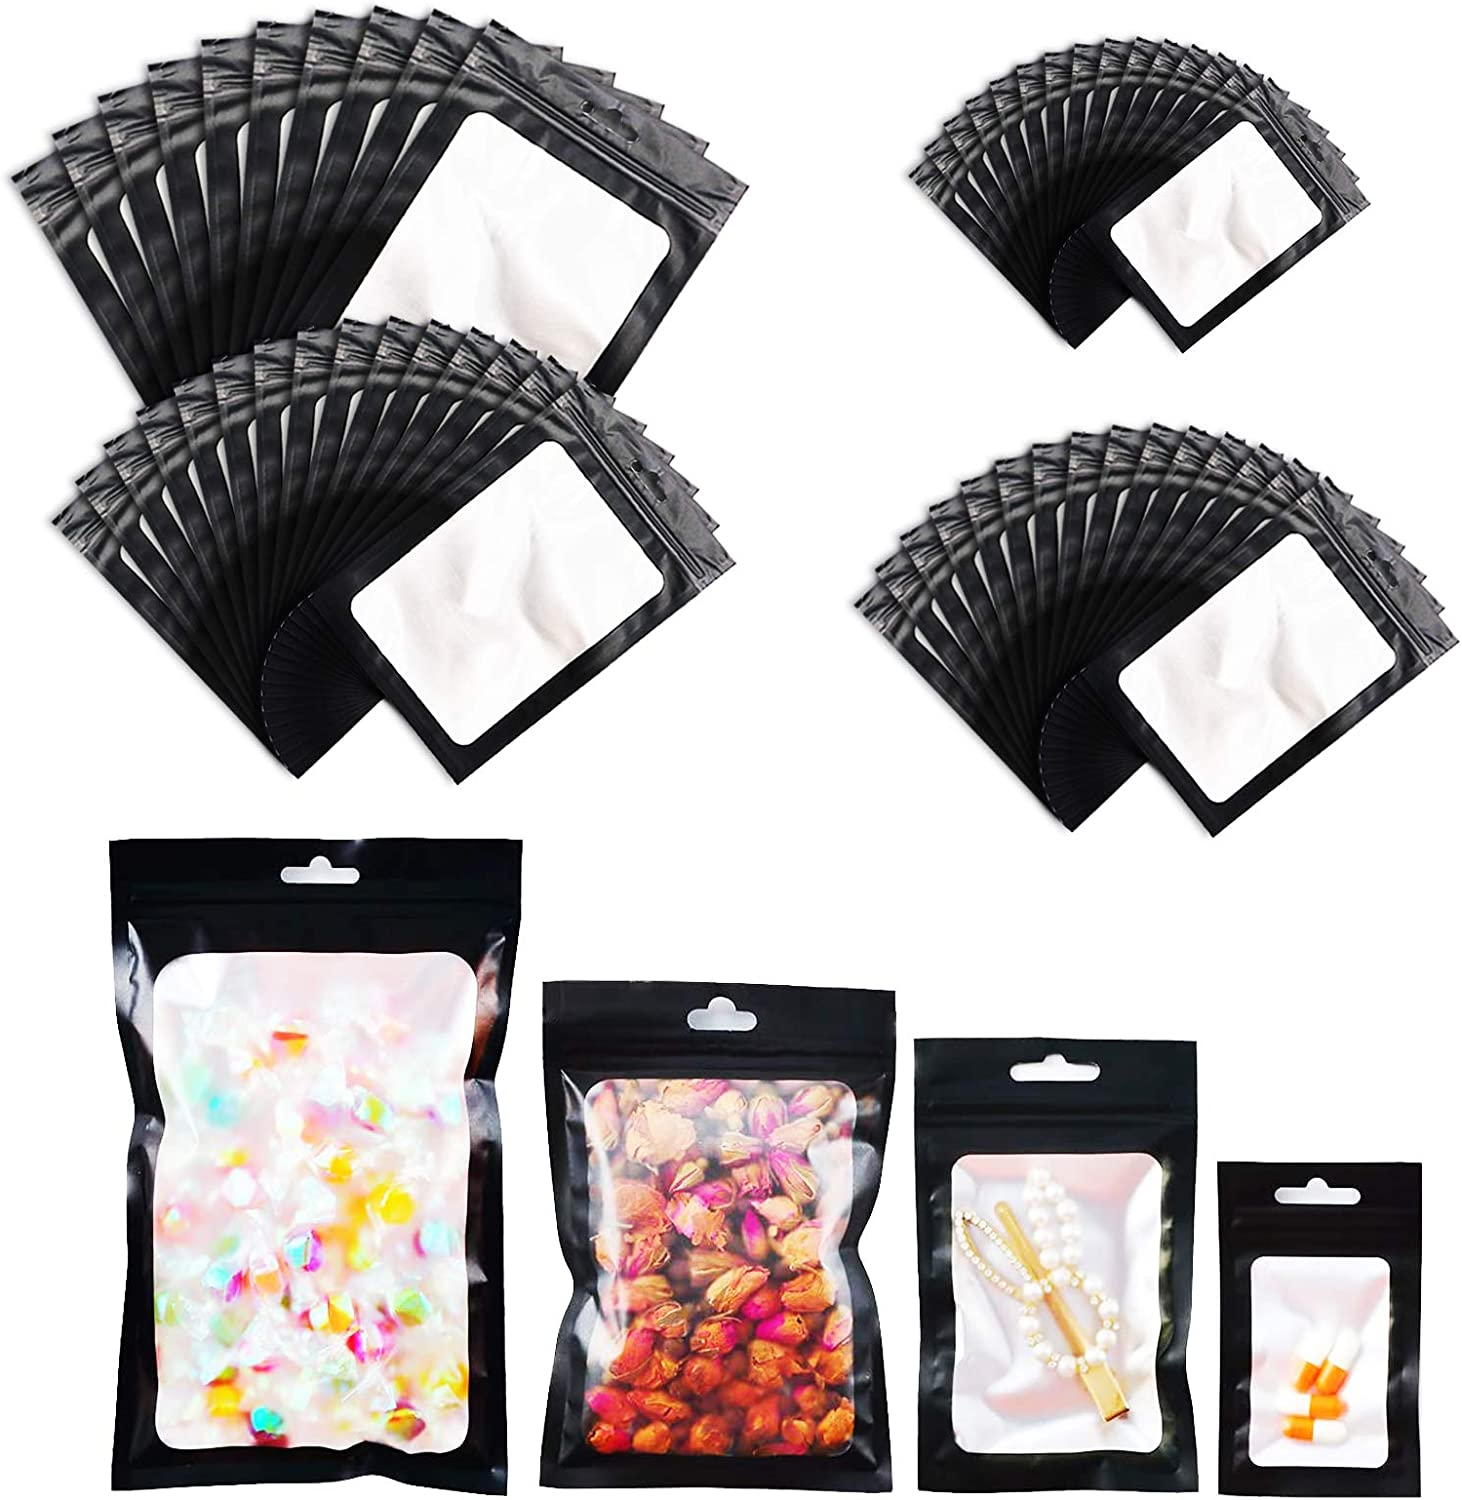 Kakaluote Reusable Ziplock Bags 120 Pieces, Metallic Foil Mylar Bags, Smell Proof Bag, Reusable Storage Bags for Freezer, Food, Fruit, Sandwich Candy, Jewelry, Screw 4 Sizes Packaging Bags